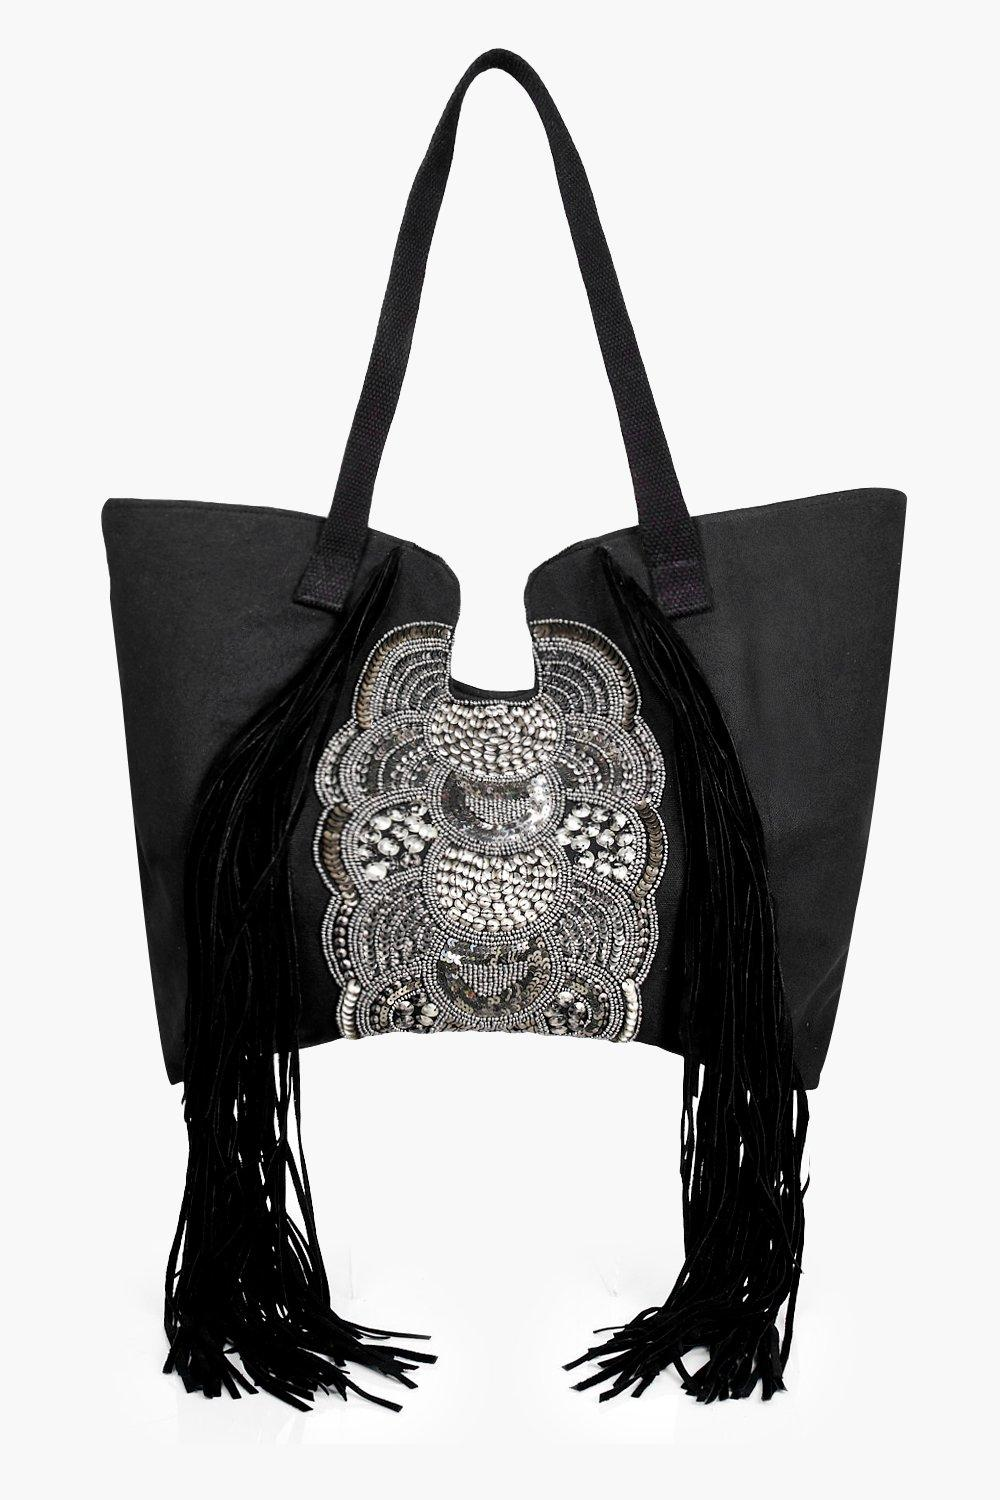 Fringed & Embellished Shopper Bag - black - Ebony